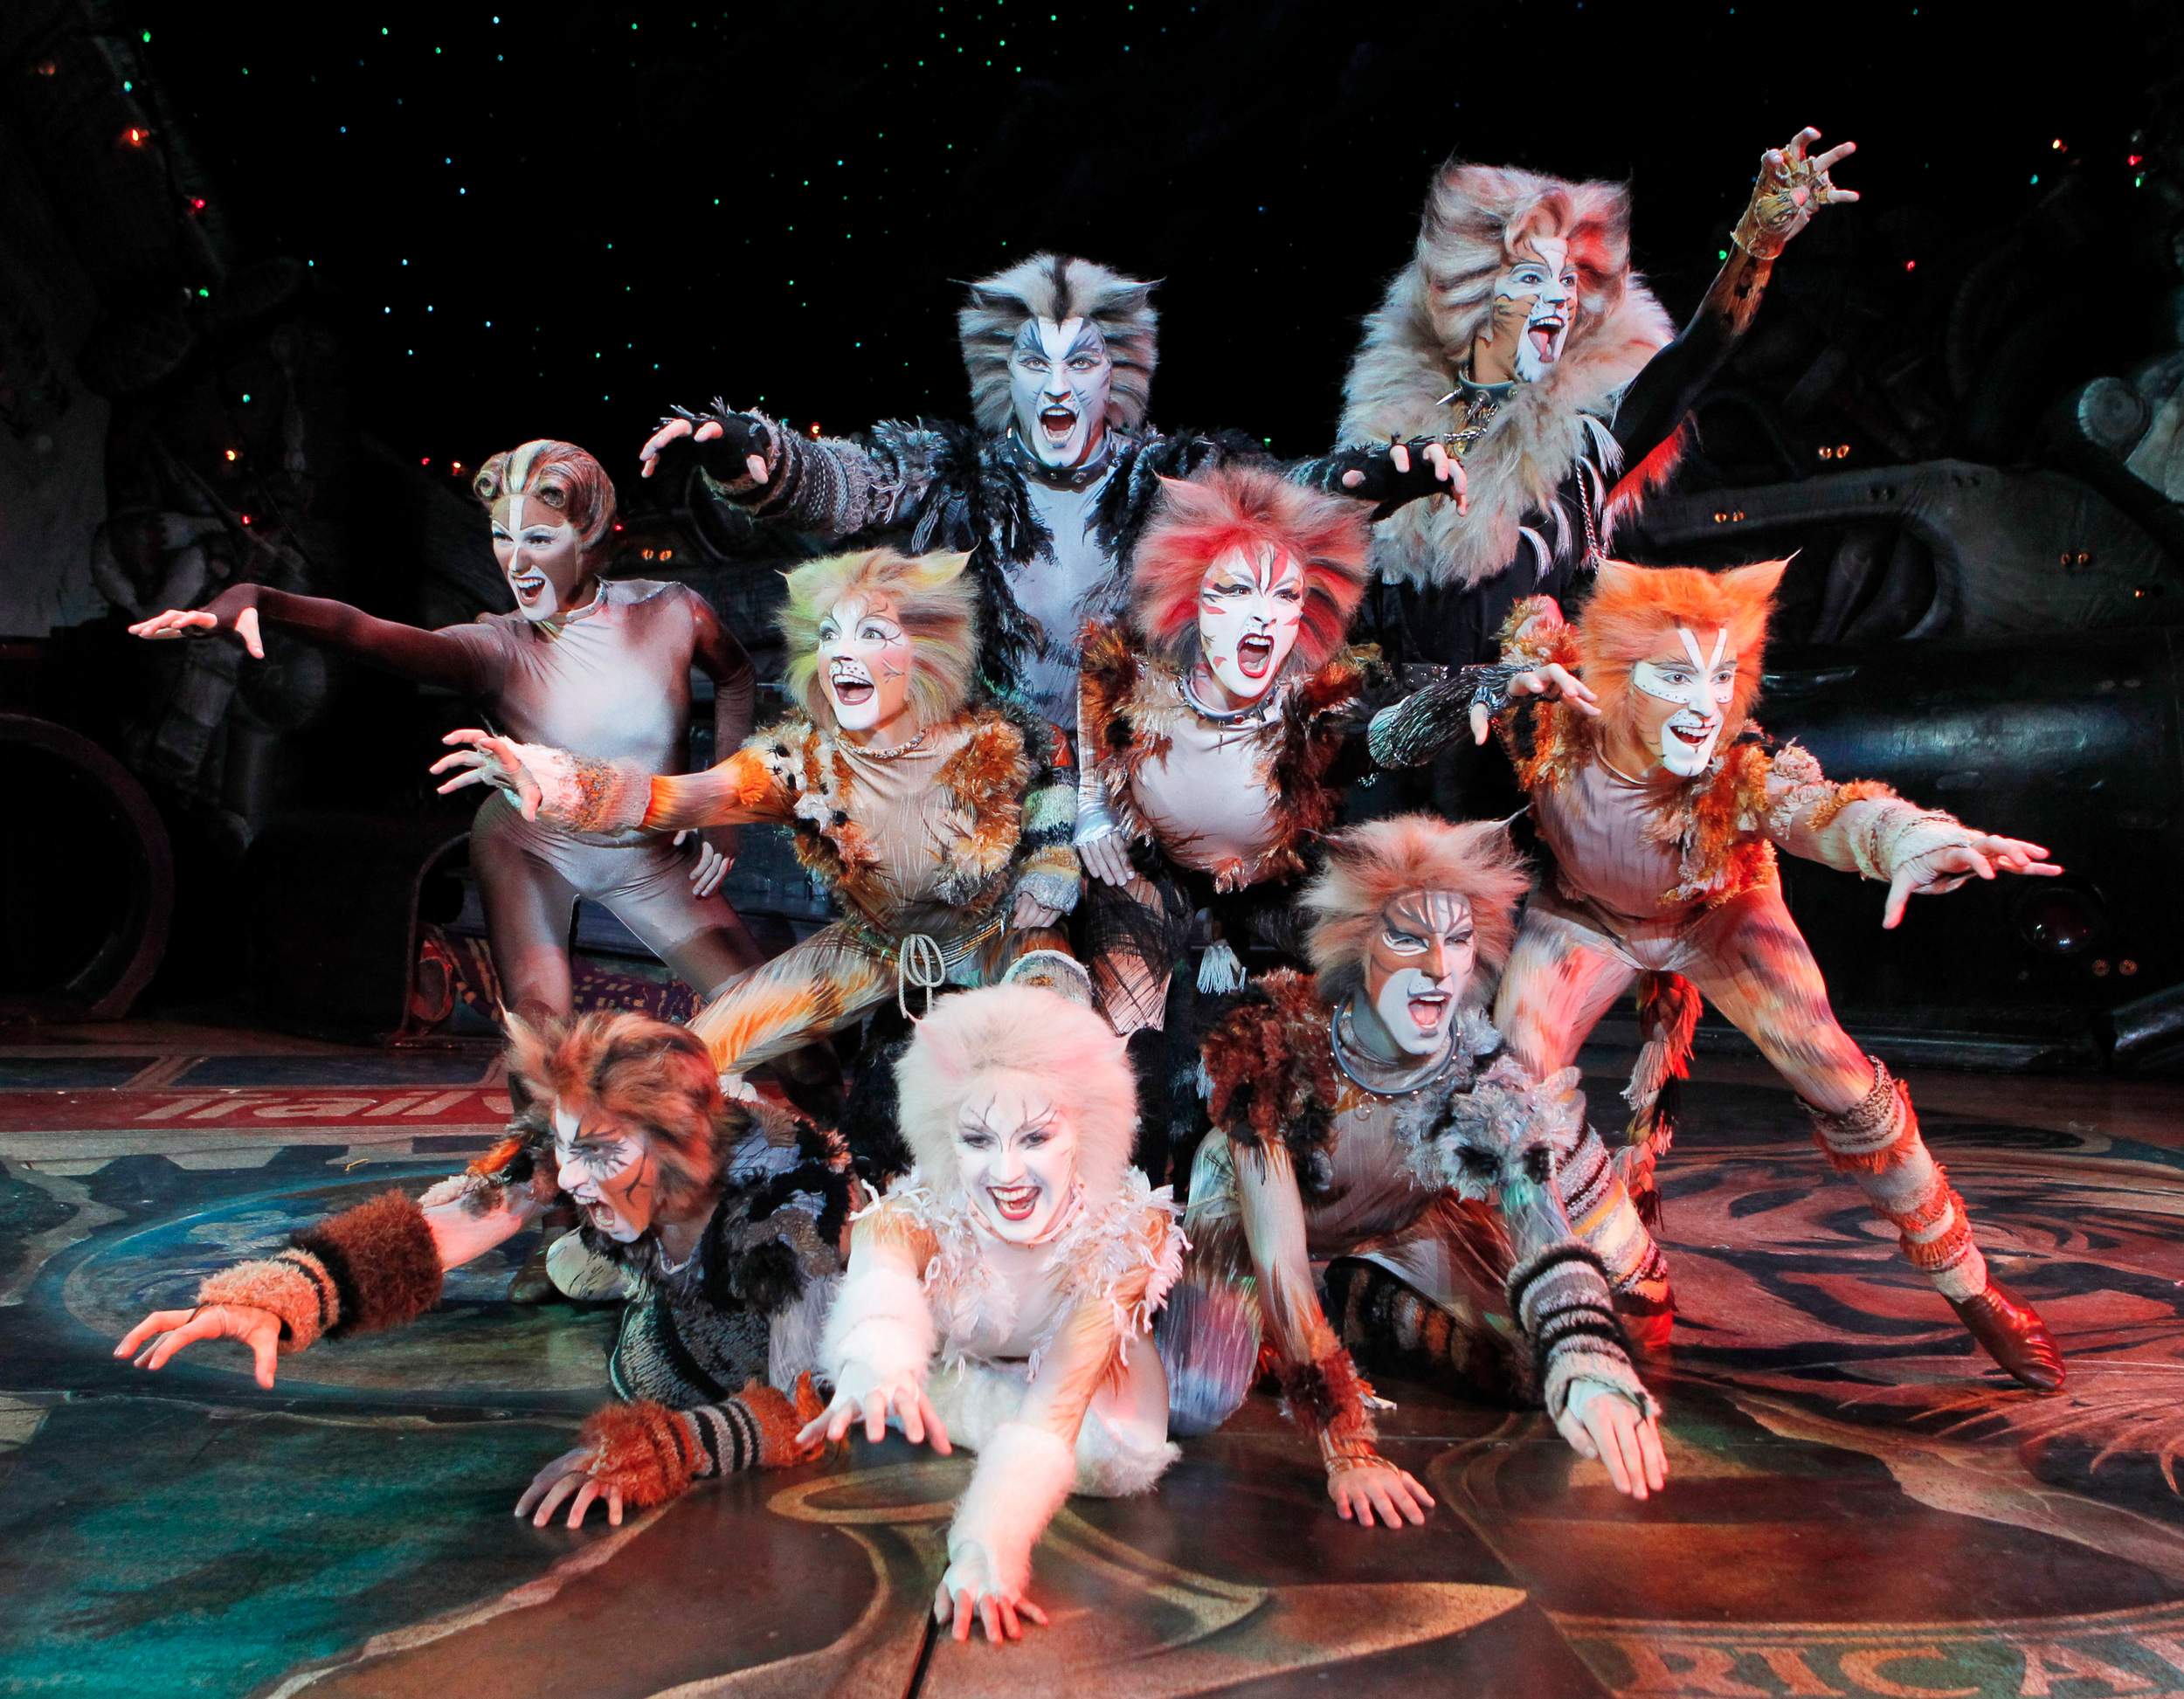 the-broadway-musical-cats-headed-to-the-big-screen.jpg